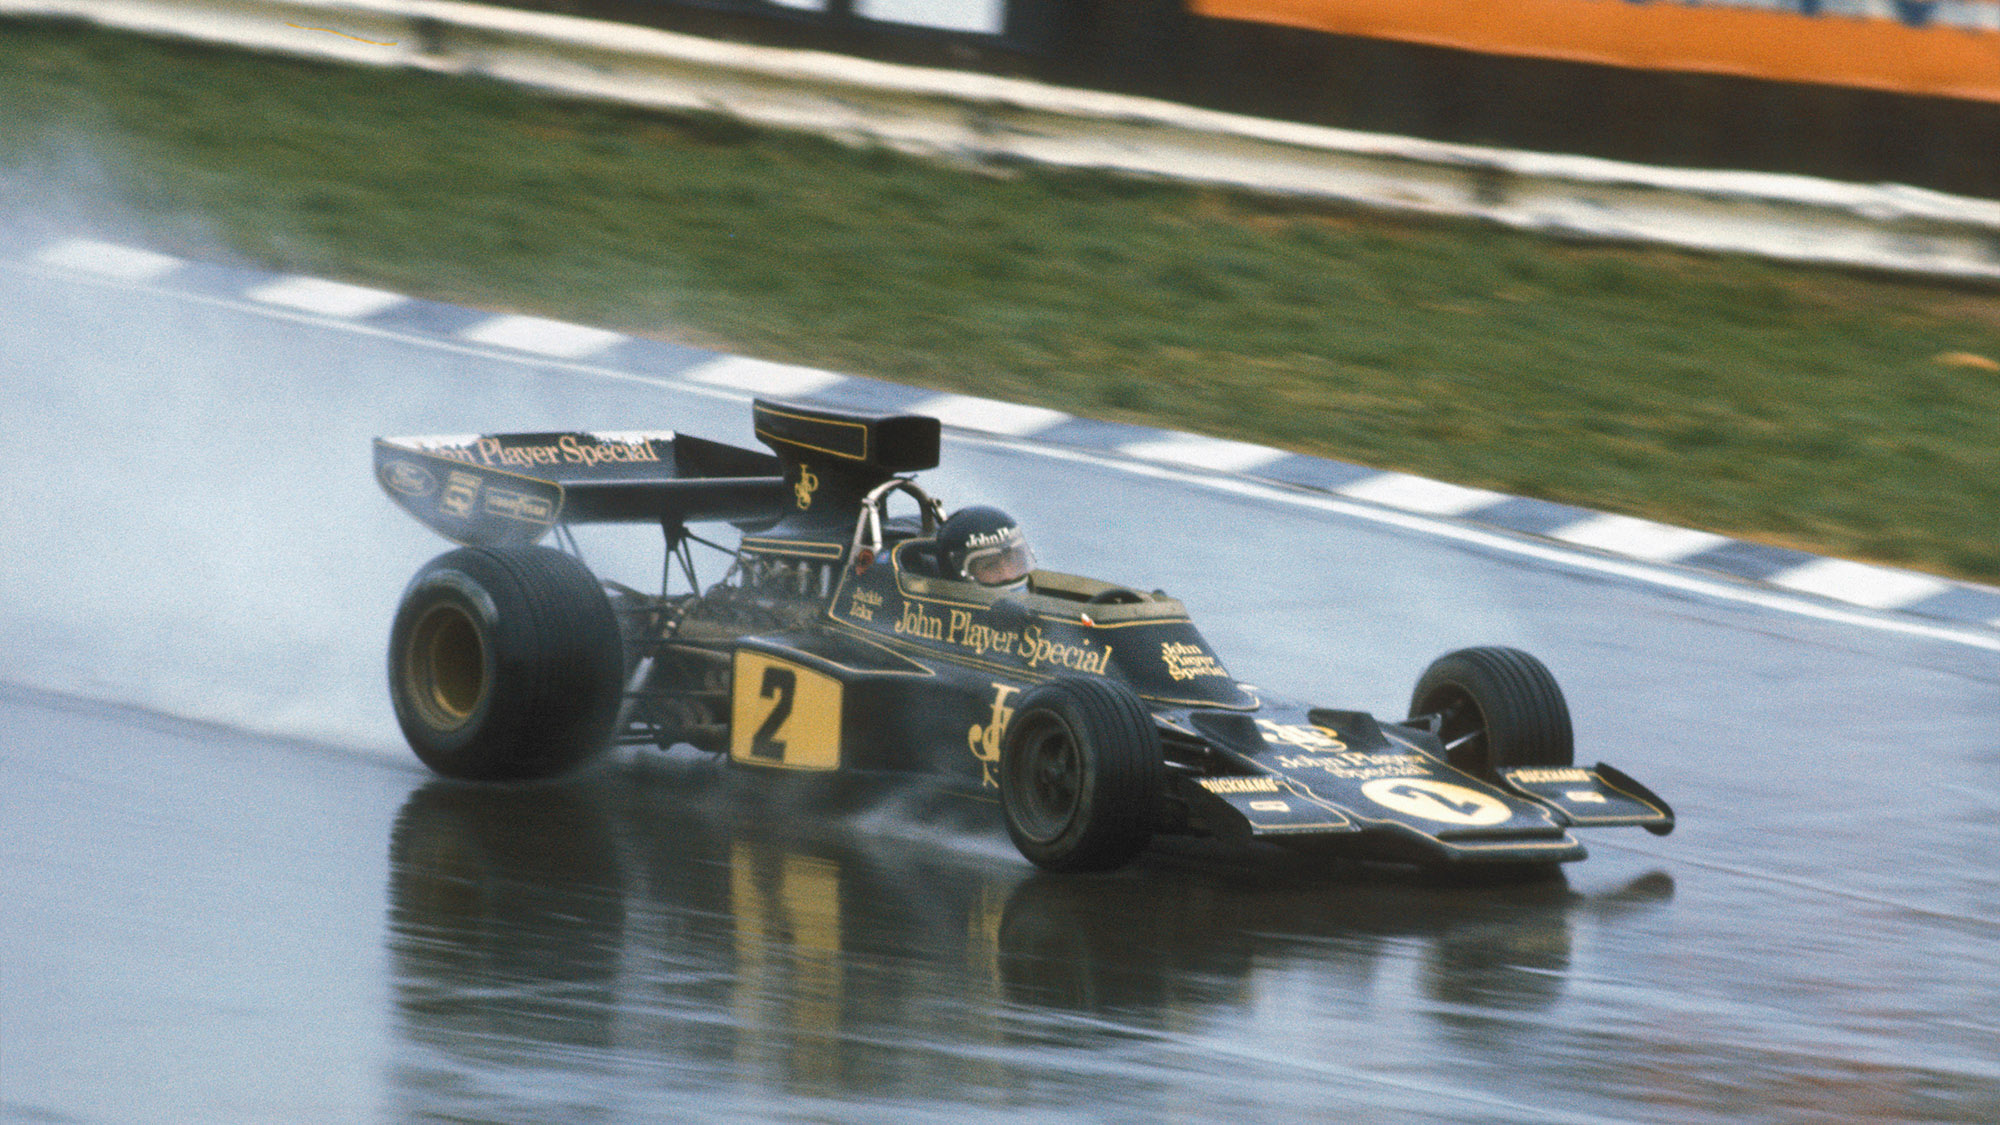 Jacky Ickx in the 1974 Race of Champions